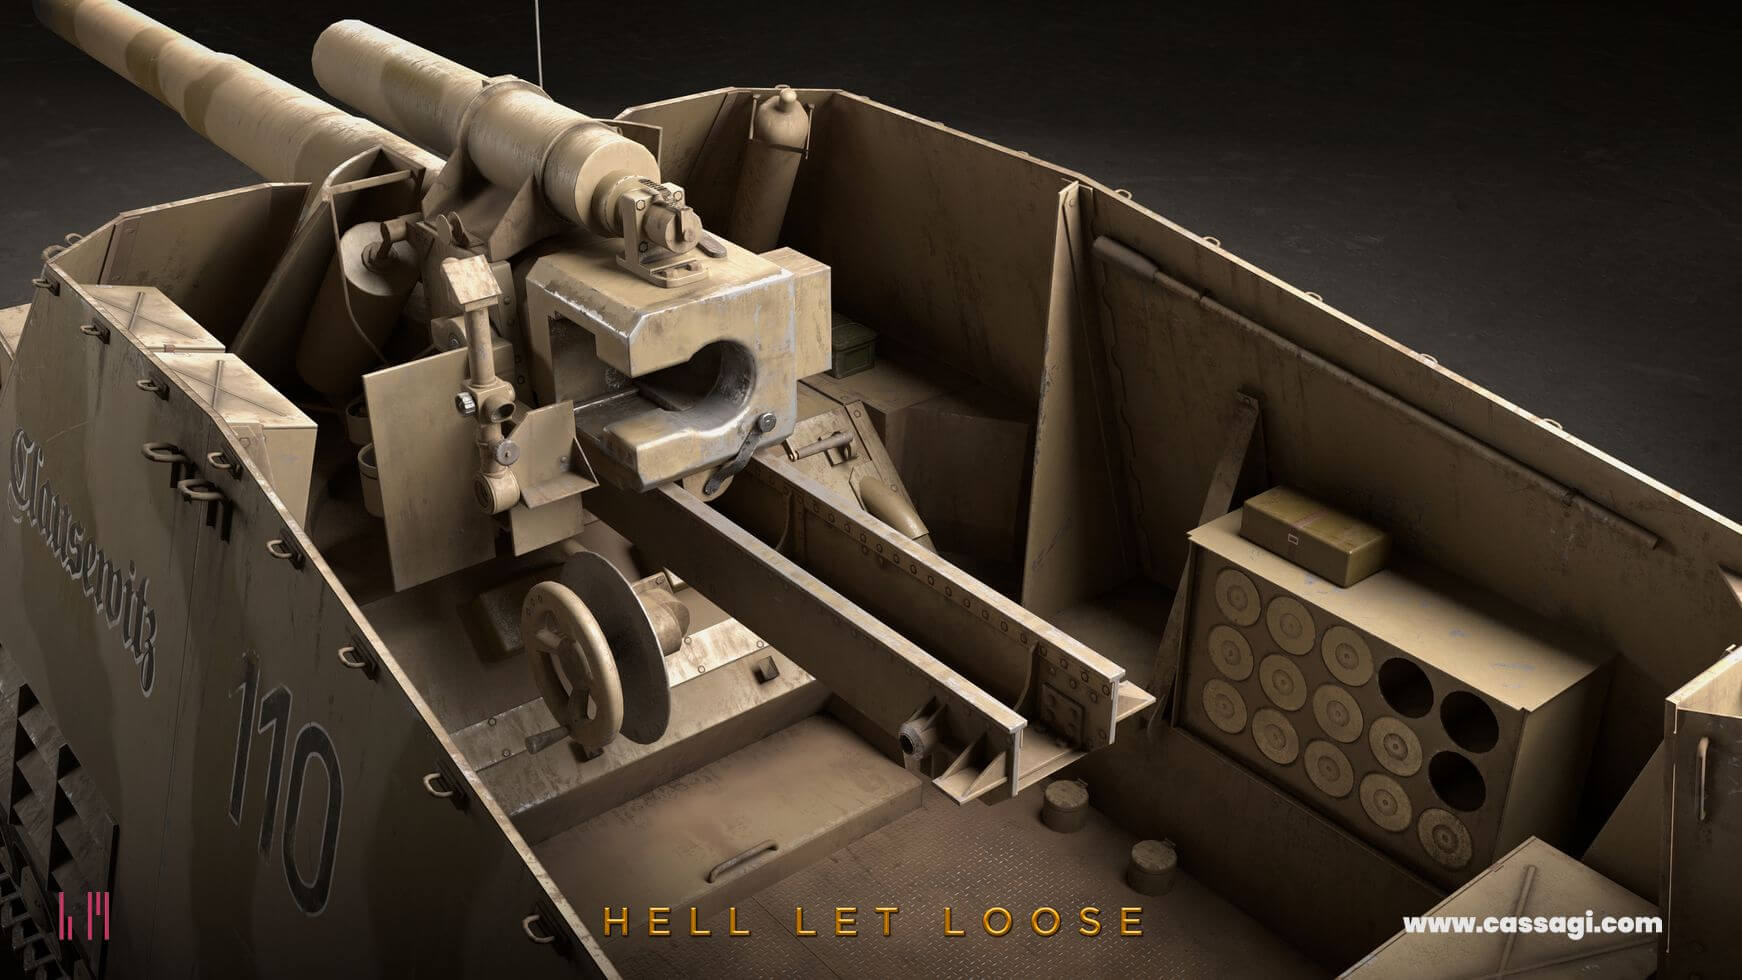 hell let loose hummel interior and gun detail in game model